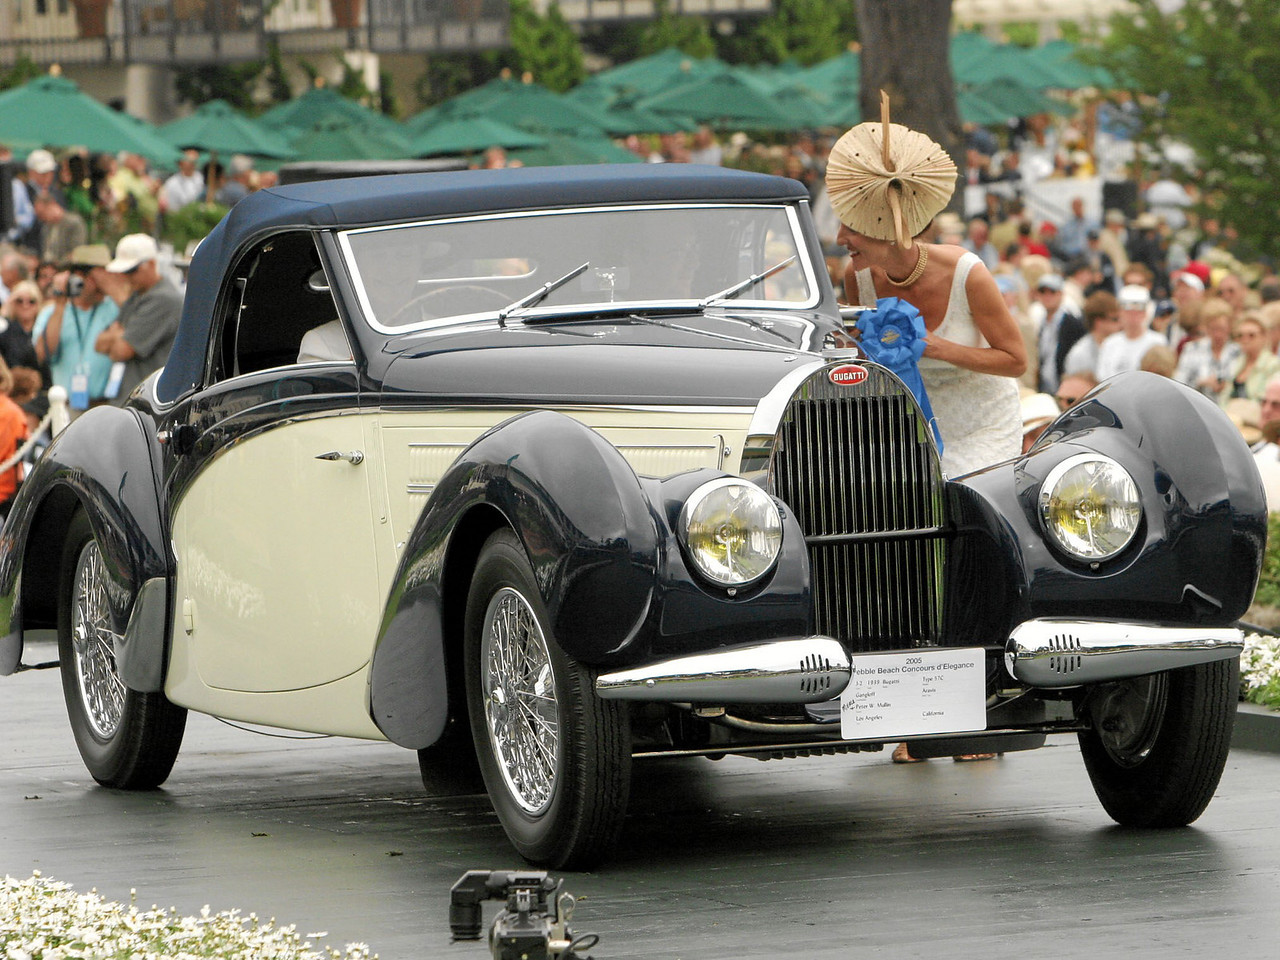 1939 Bugatti Type 57C Gangloff Aravis owned by Peter W. Mullin from Los Angeles 1st Class J-2 (European Classic 1925-1939 Open)